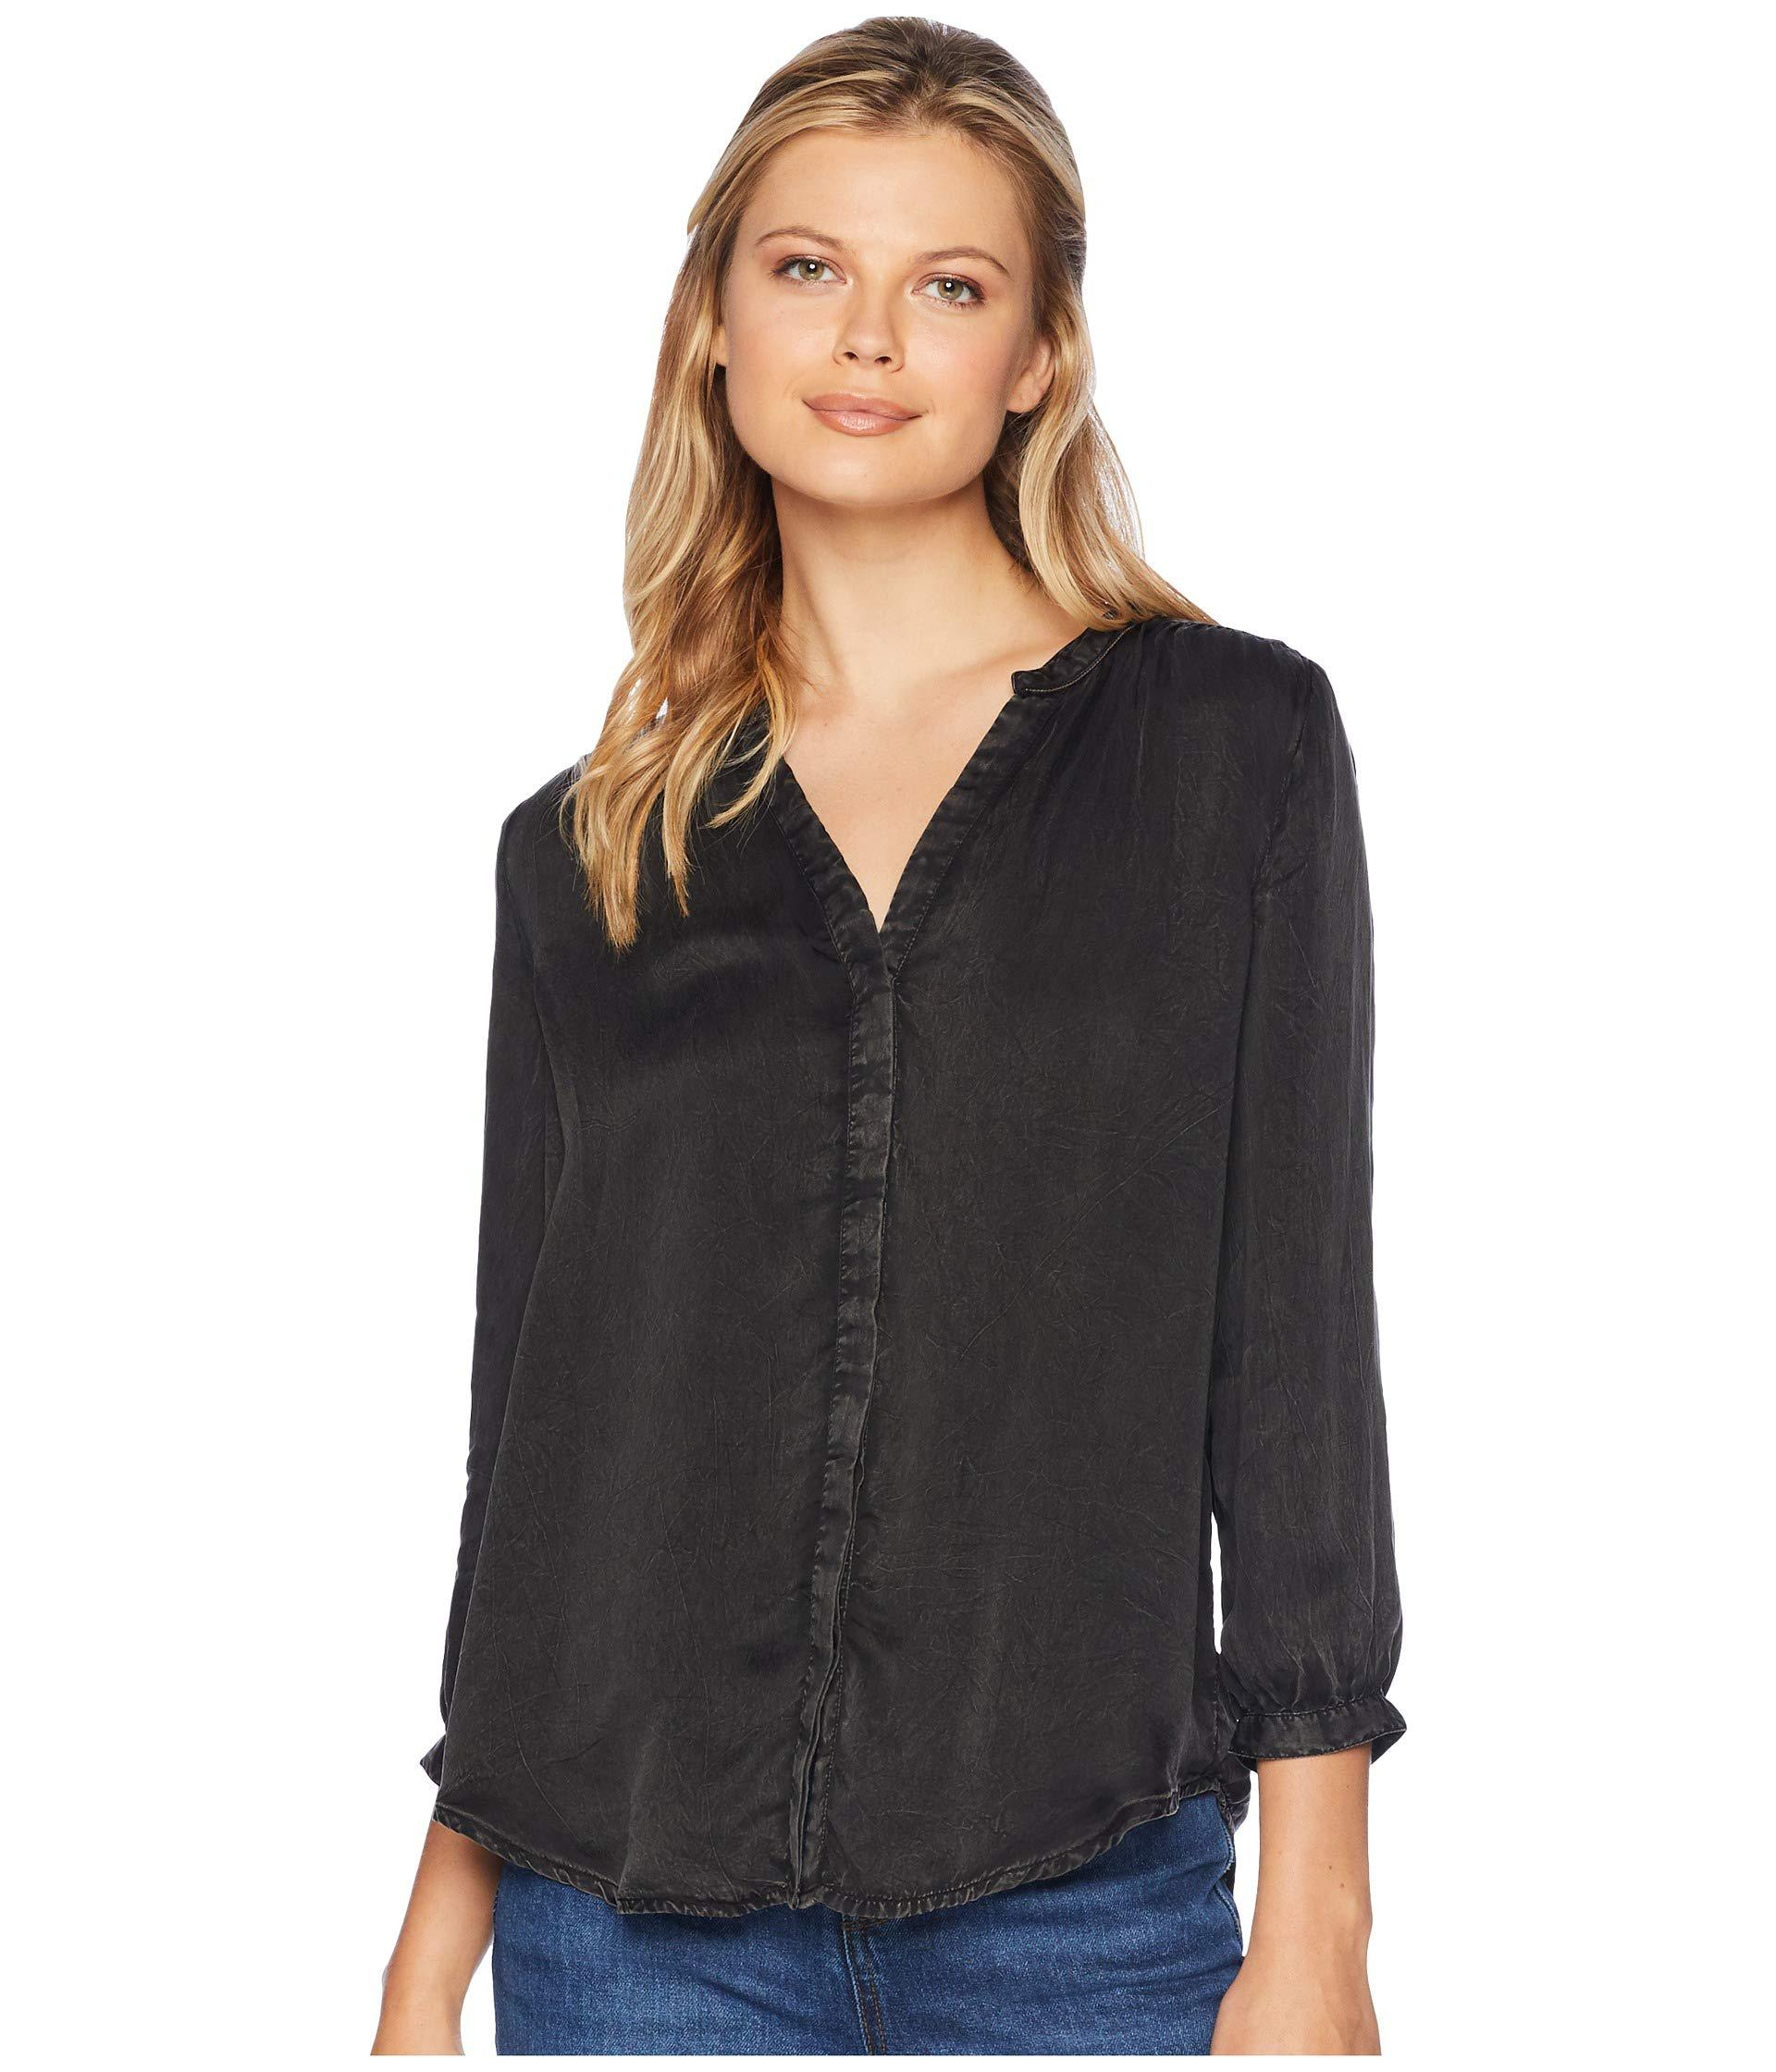 32e2ae9755d63c Lyst - NYDJ Garment Dye Blouse W  Studs (black) Women s Blouse in Black